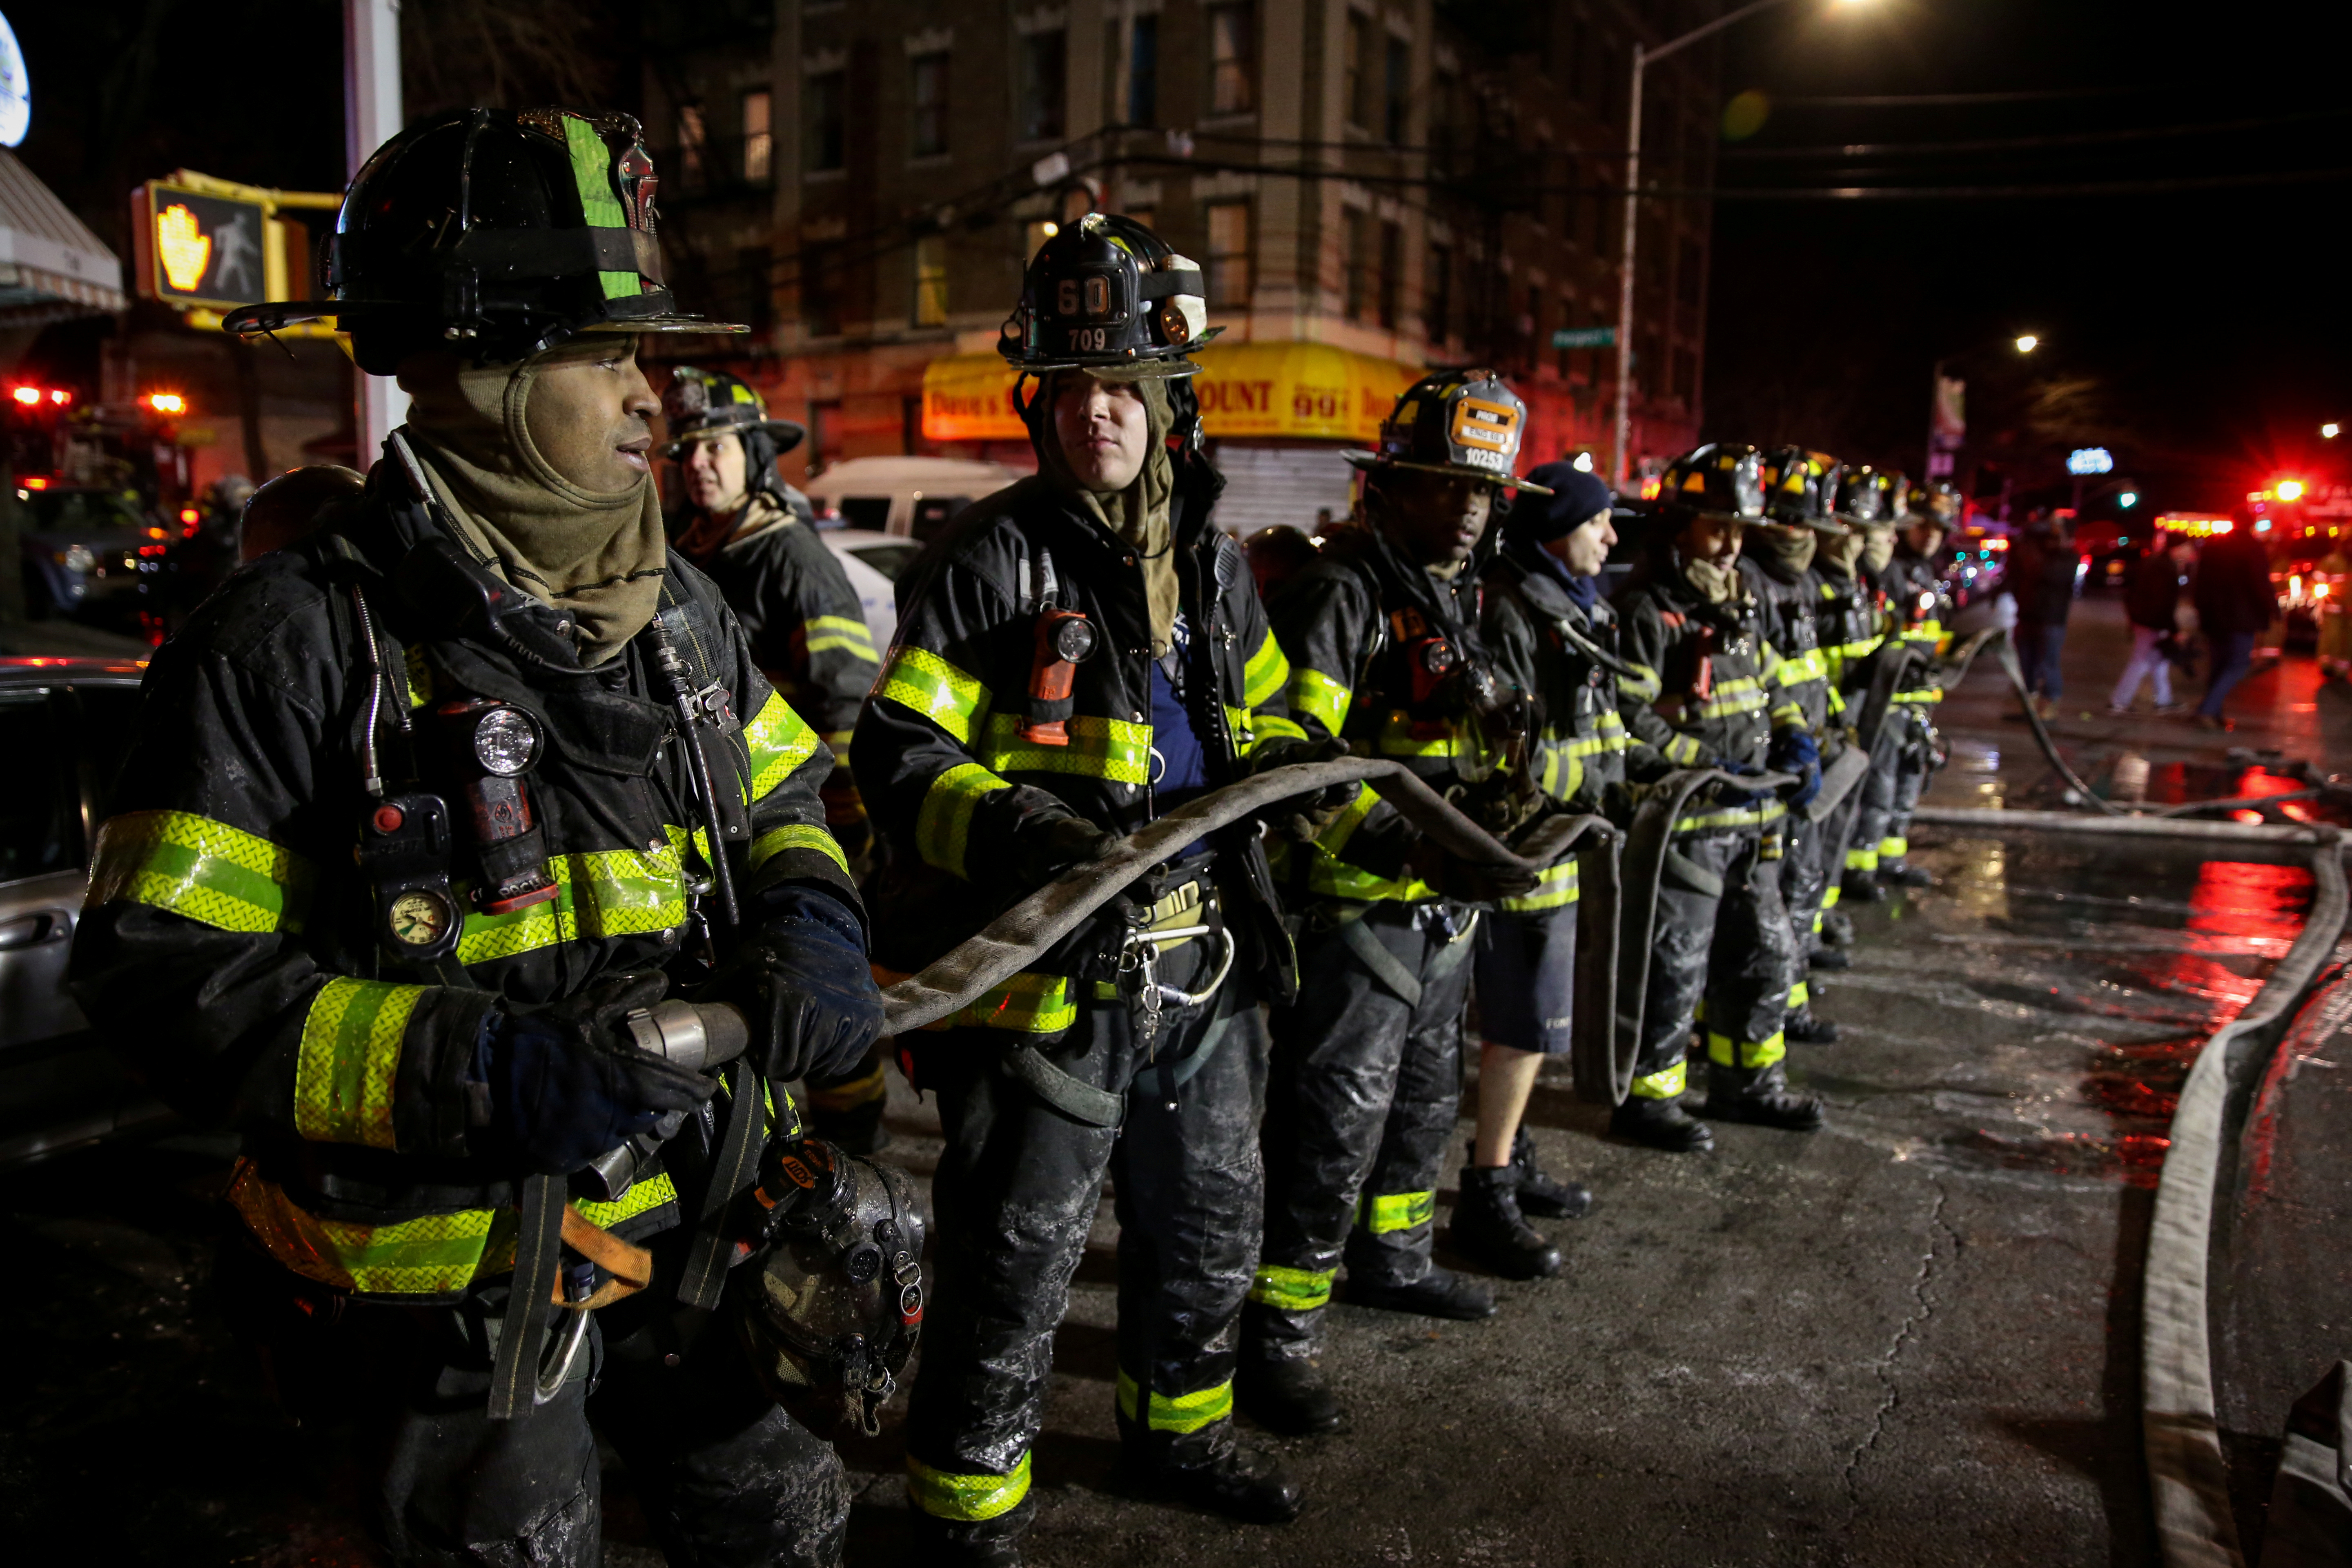 Fire Department of New York (FDNY) personnel work on the scene of an apartment fire in Bronx, New York, U.S. December 28, 2017. REUTERS/Amr Alfiky